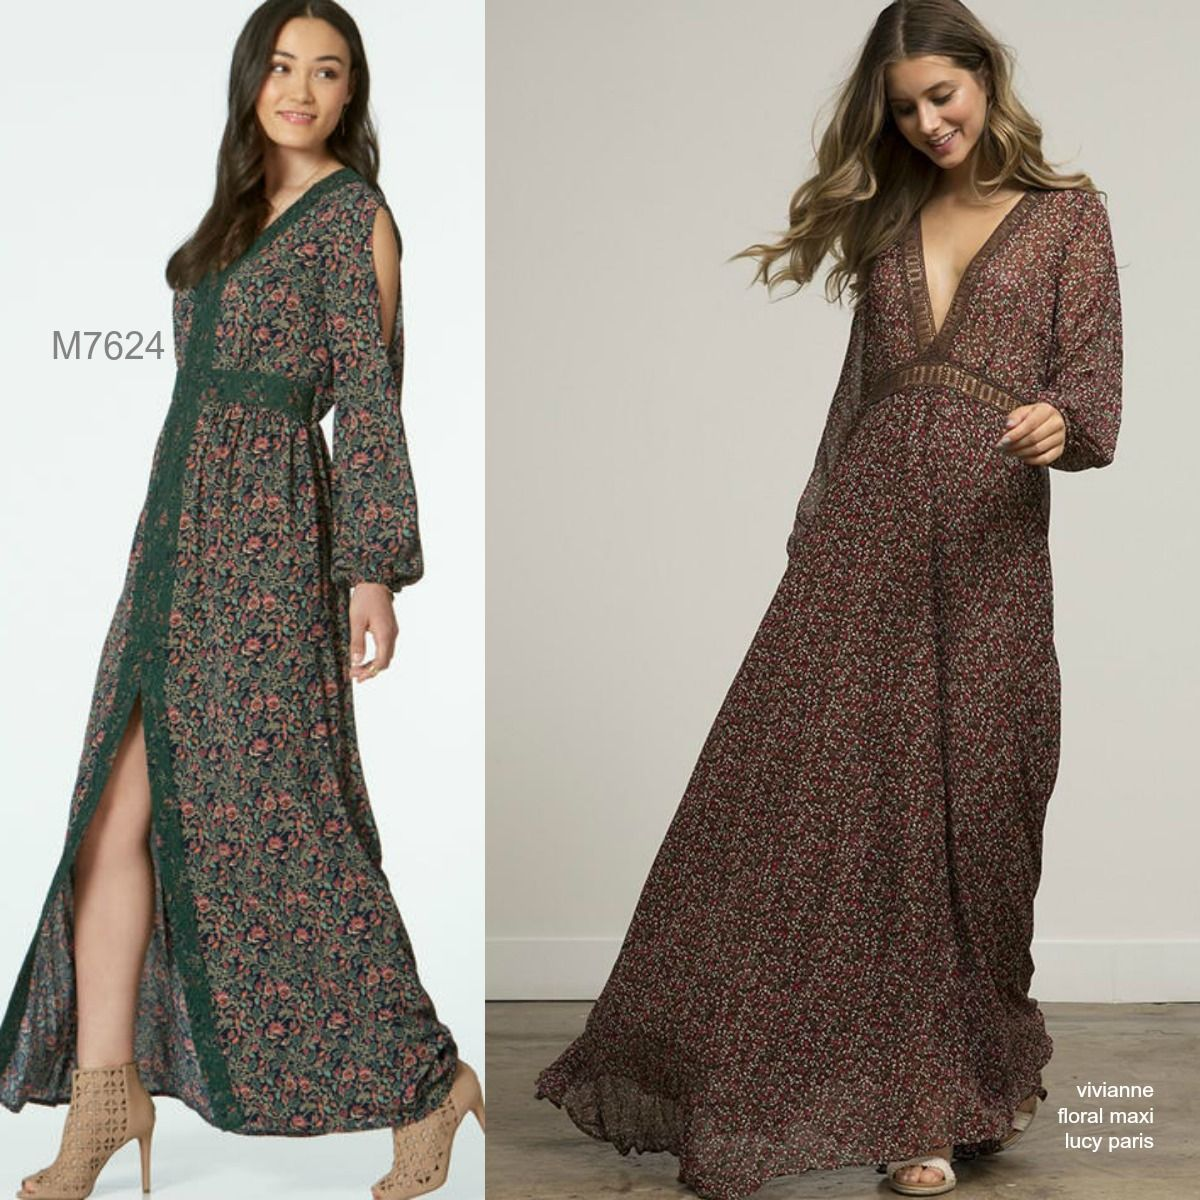 Sew the look mccalls m7624 maxi dress sew the look mccalls sewing pattern misses banded dresses with sleeve and length options jeuxipadfo Images